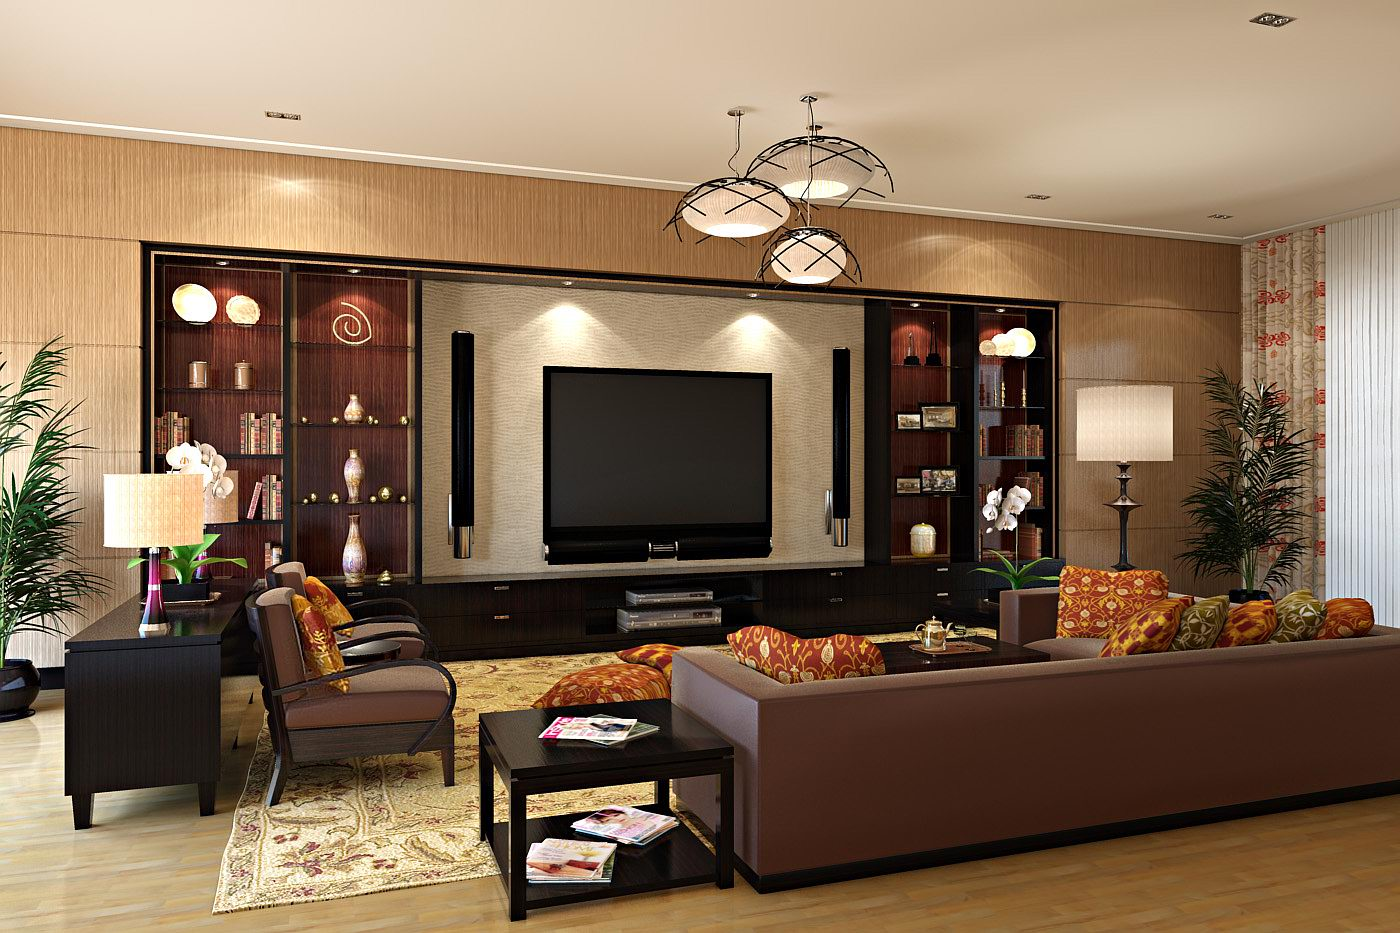 a picture of living room yellow accent decorating ideas with entertainment center decorzt interior designs home spaces